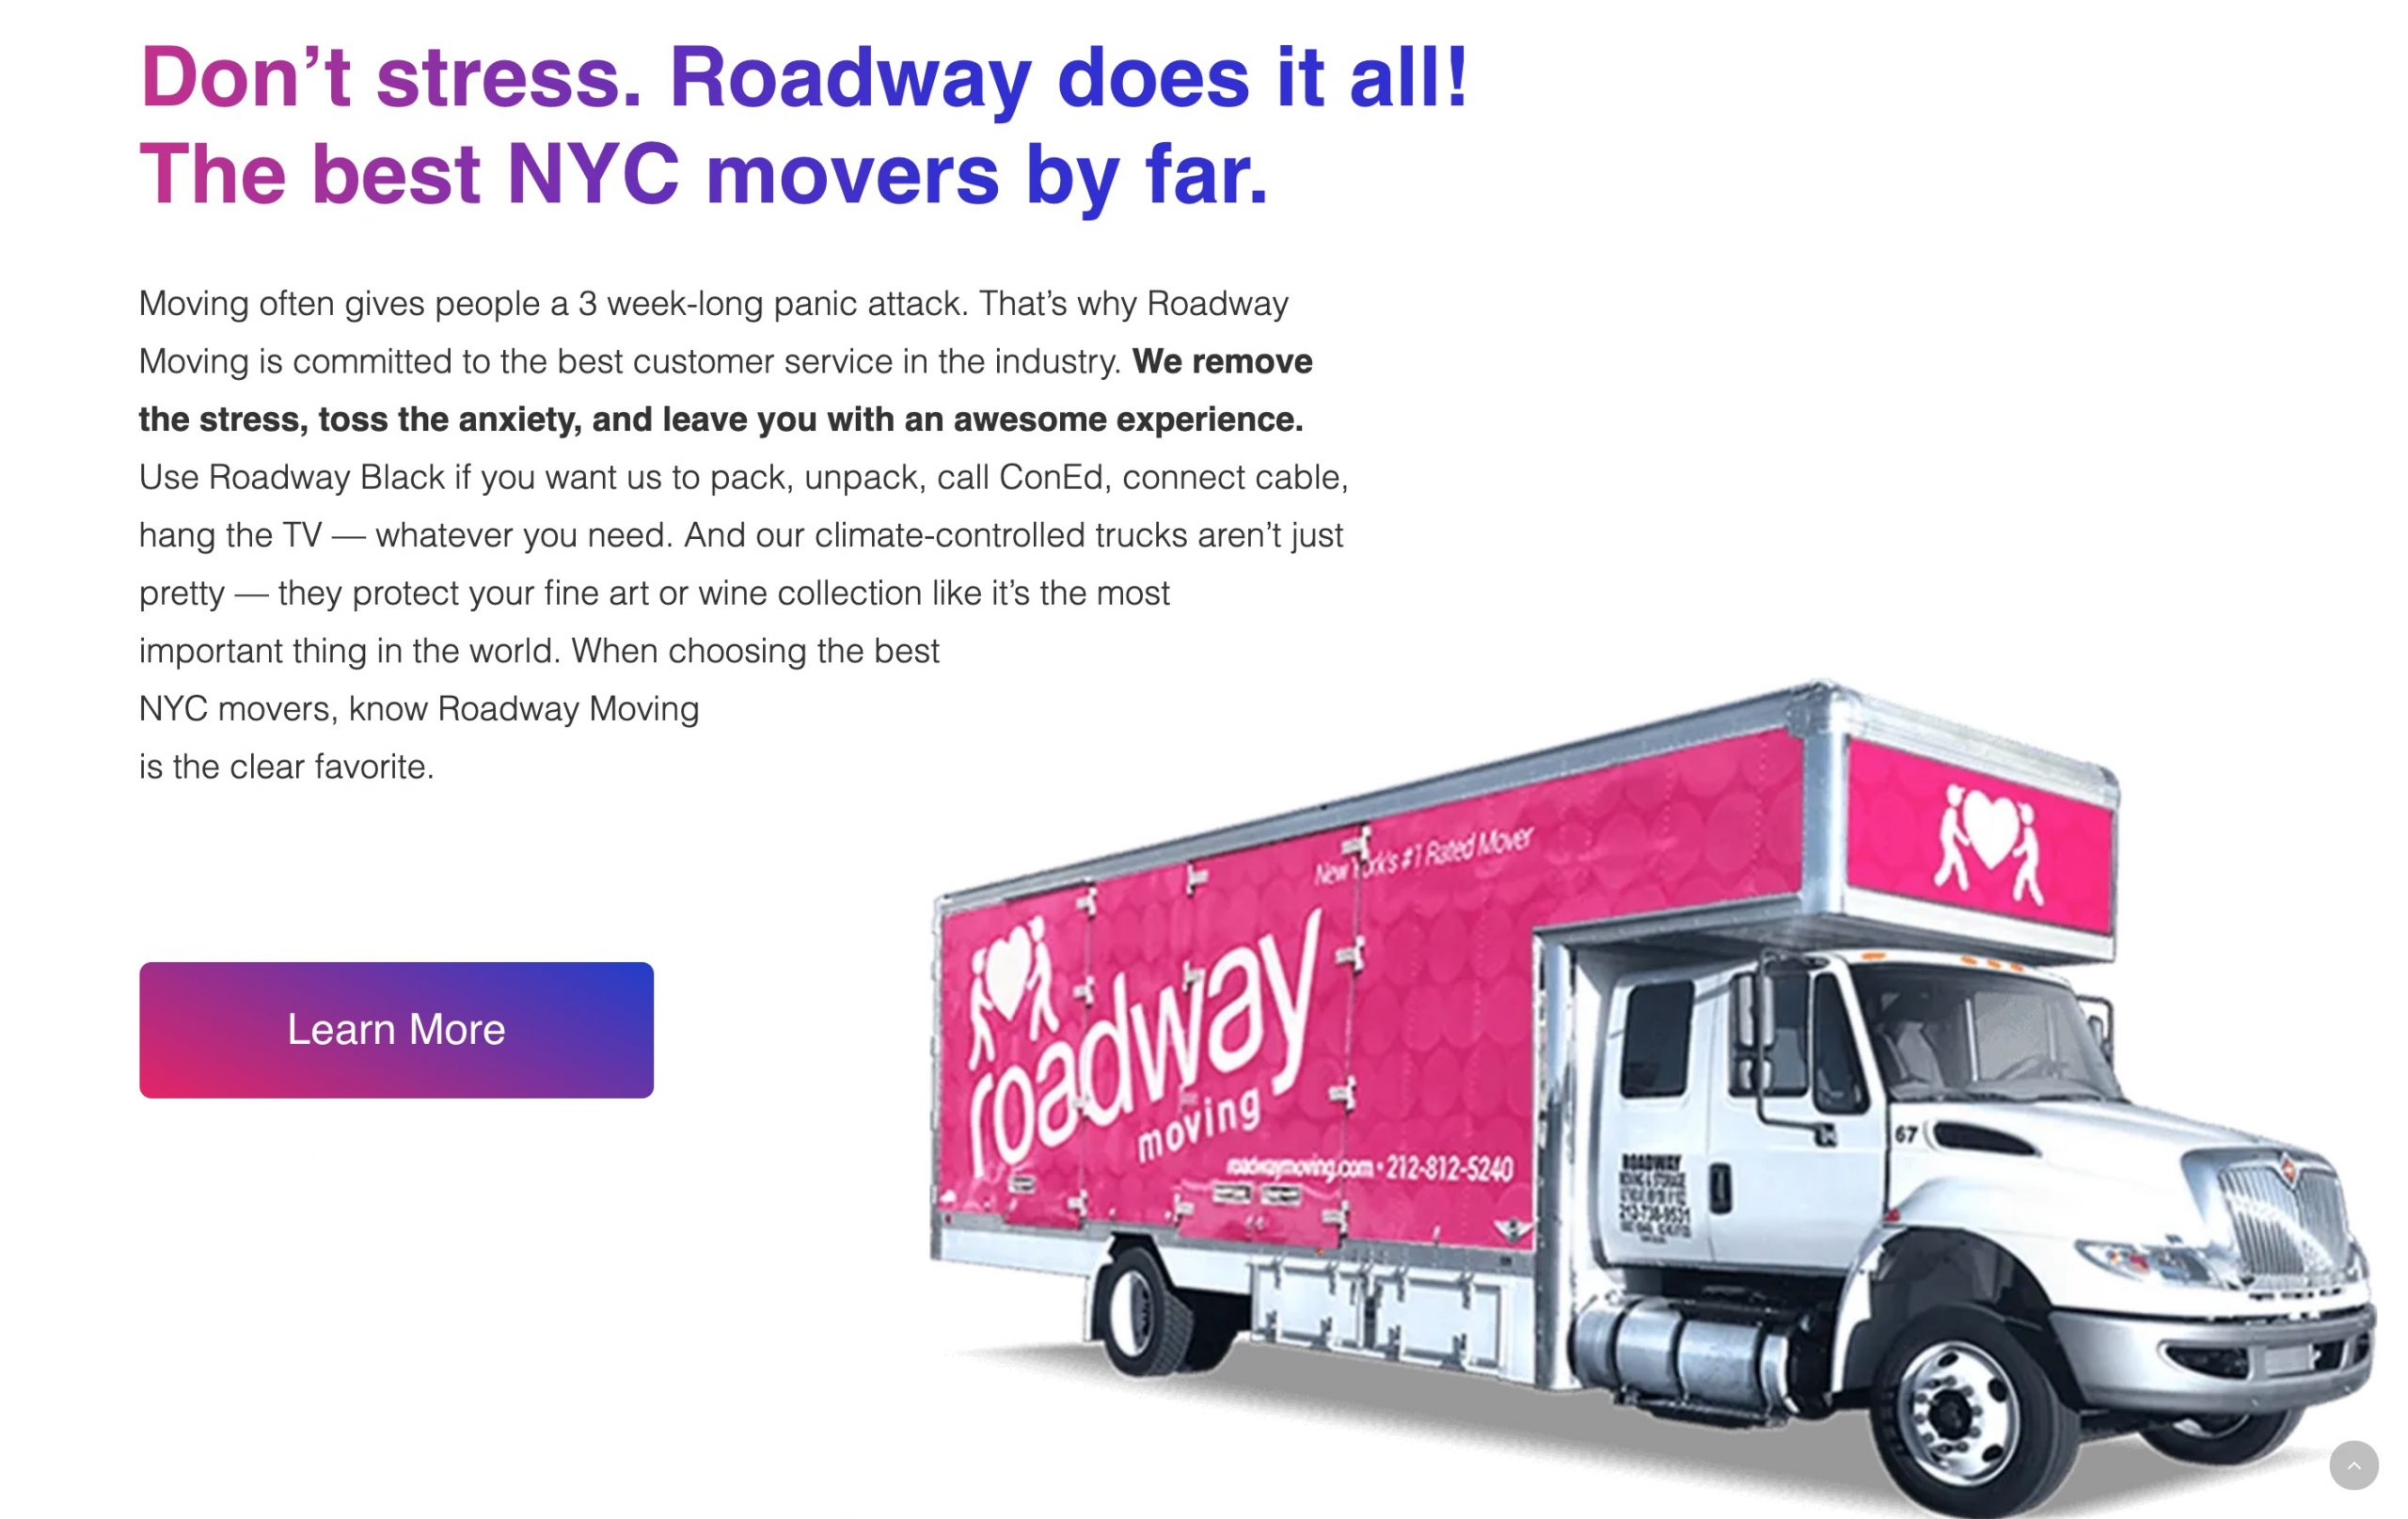 roadway moving dont stress